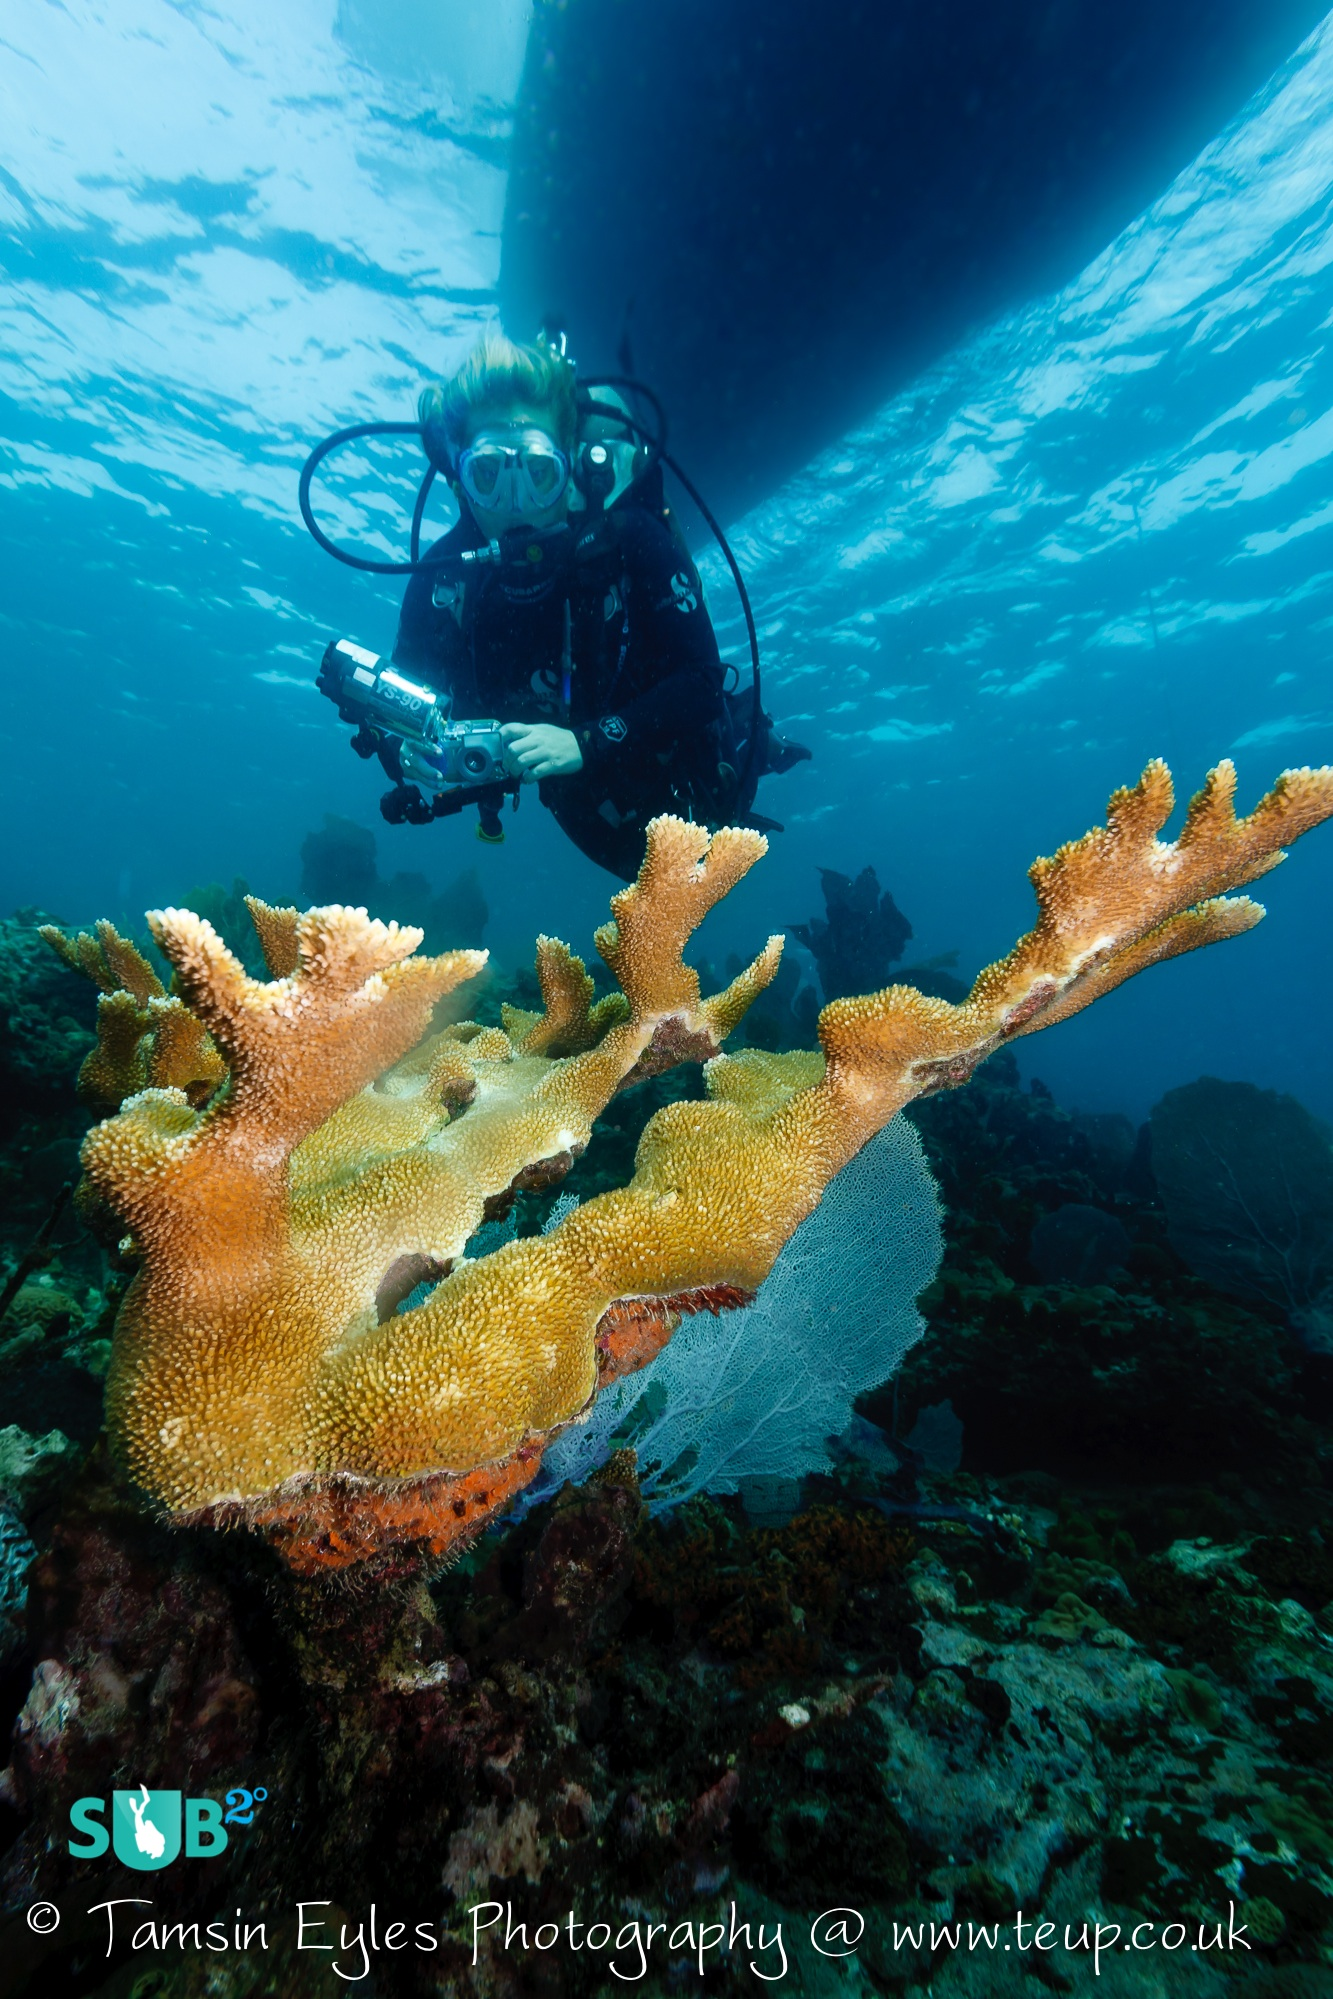 Divers find elkhorn coral formations along many of the reefs in Bequia. Photo courtesy of Tamsin Eyles.